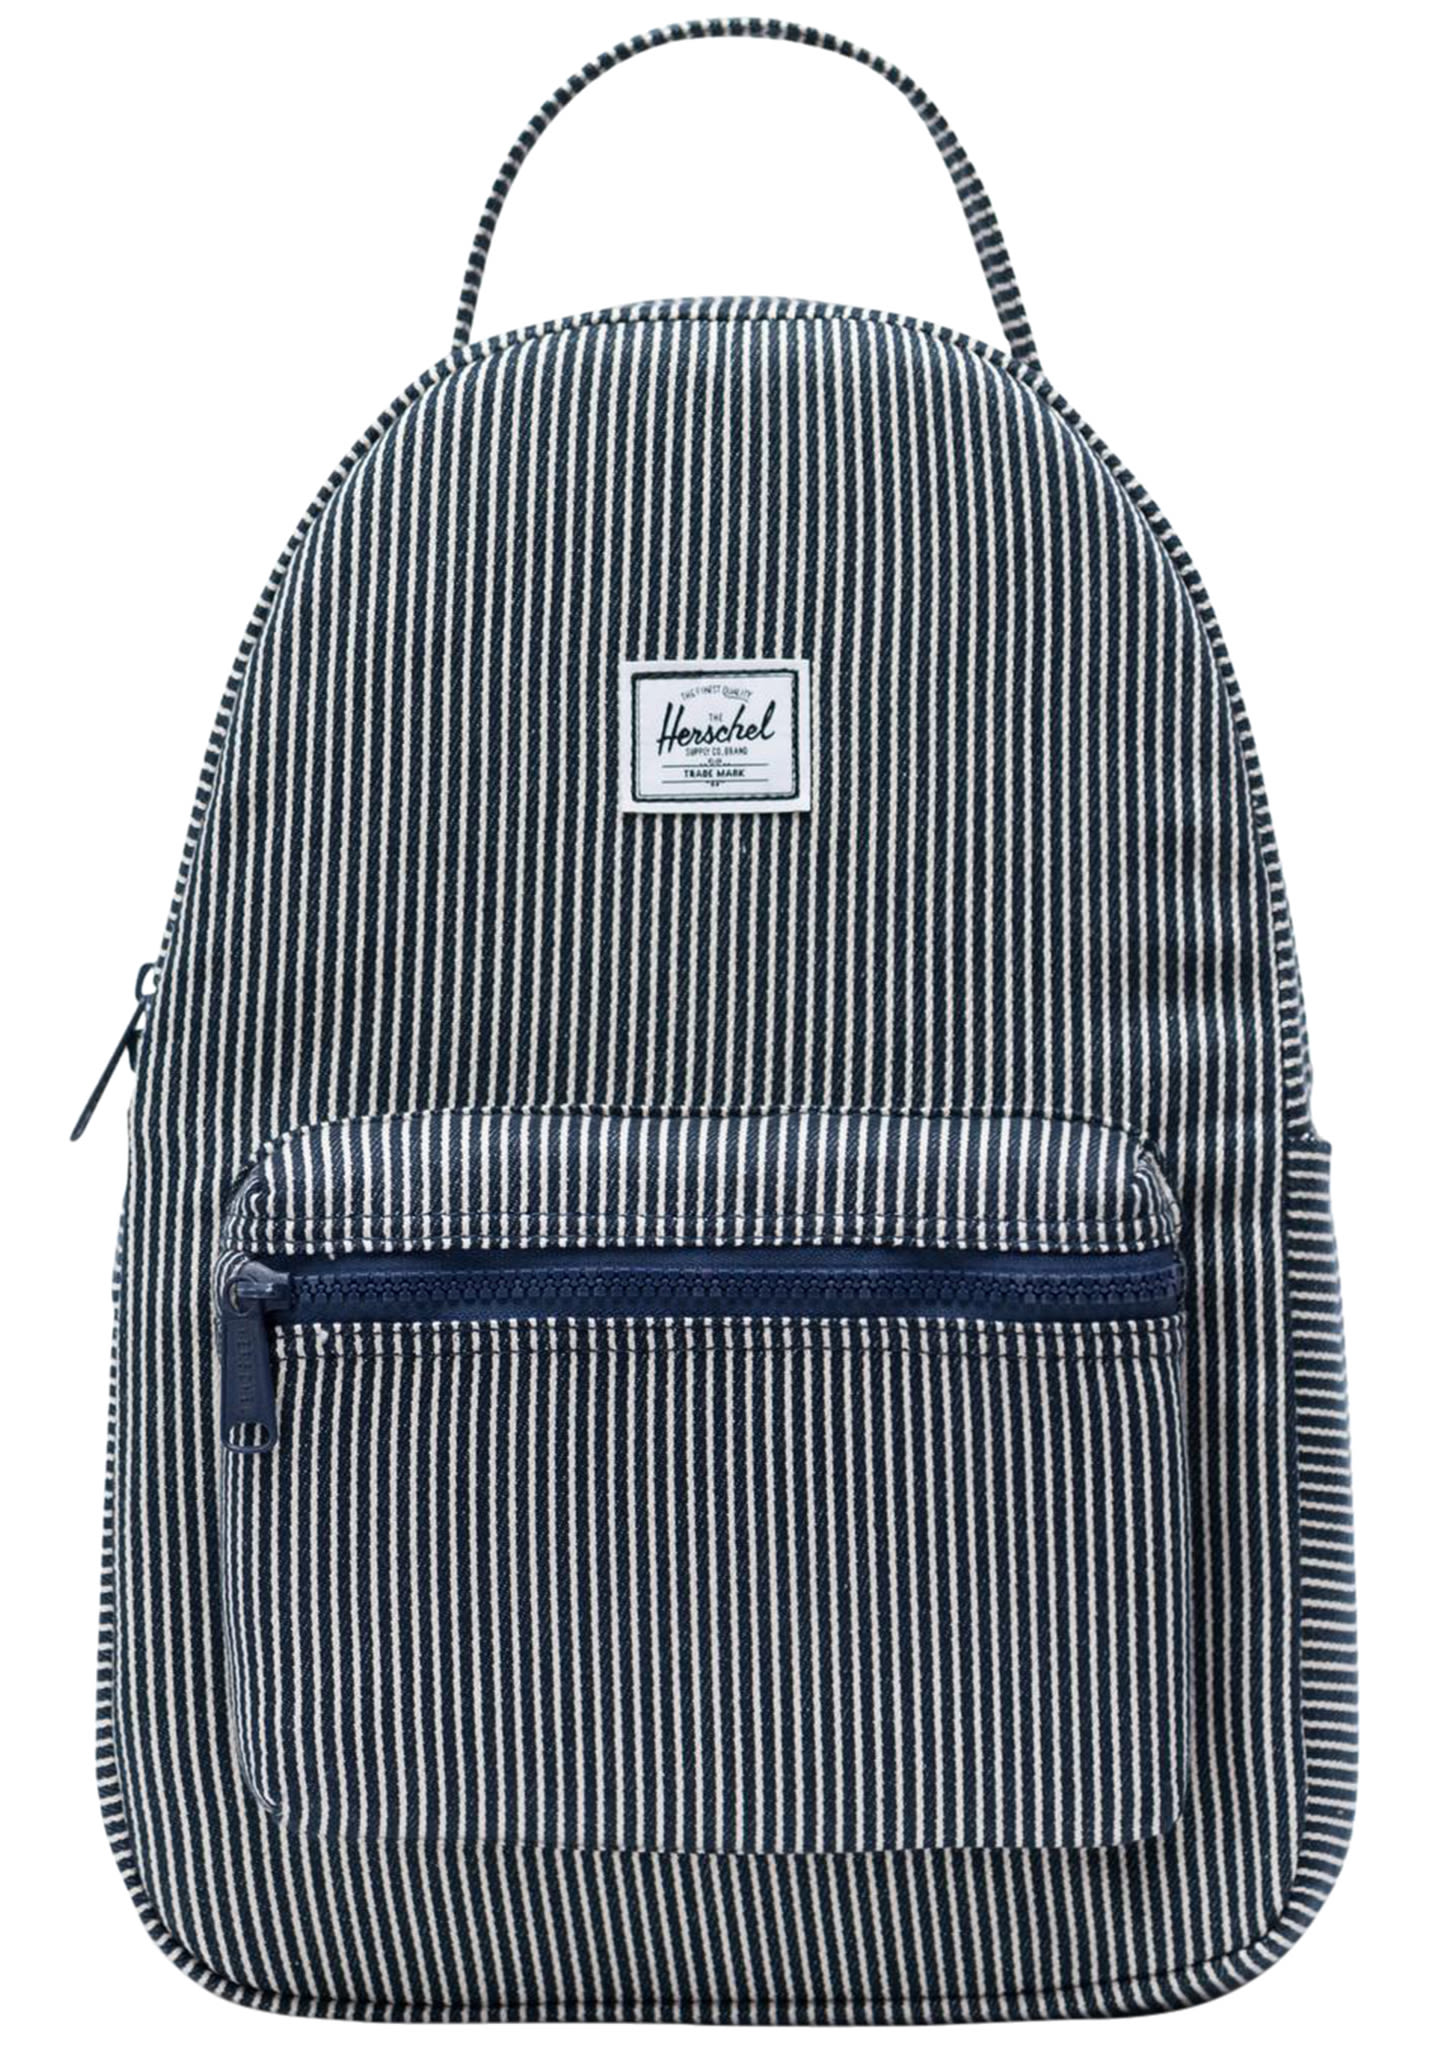 17l Small À Sac Femme Supply Rayures Co Nova Pour Dos Herschel H2IWE9D